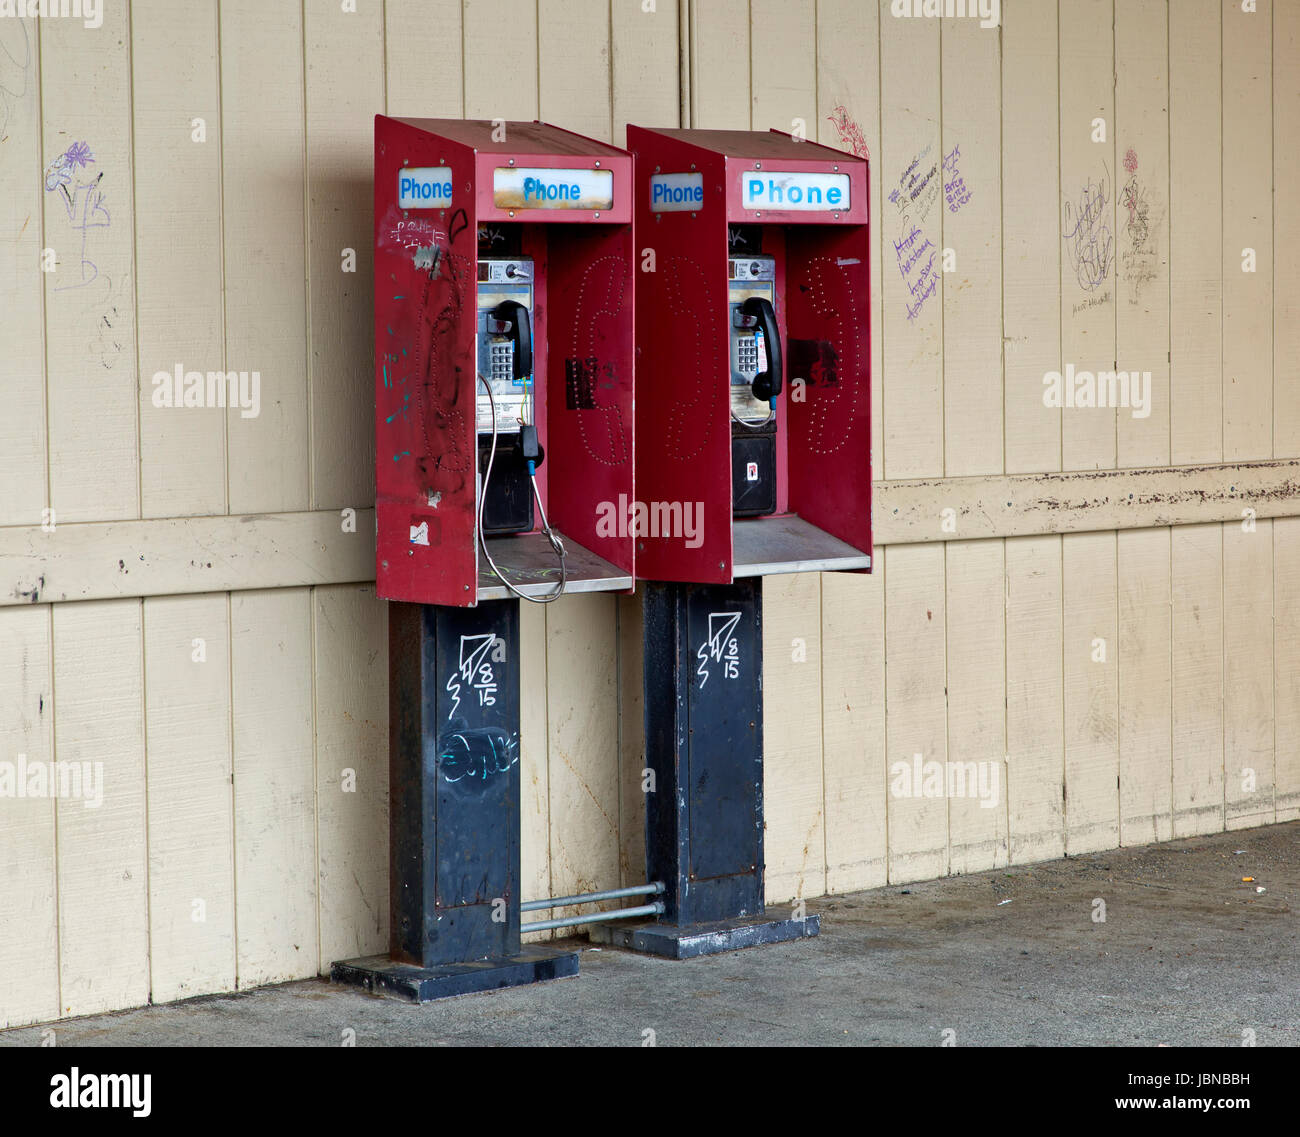 Abandoned coin operated public pay telephones with coin release slot,  graffiti on wall & telephones. . - Stock Image